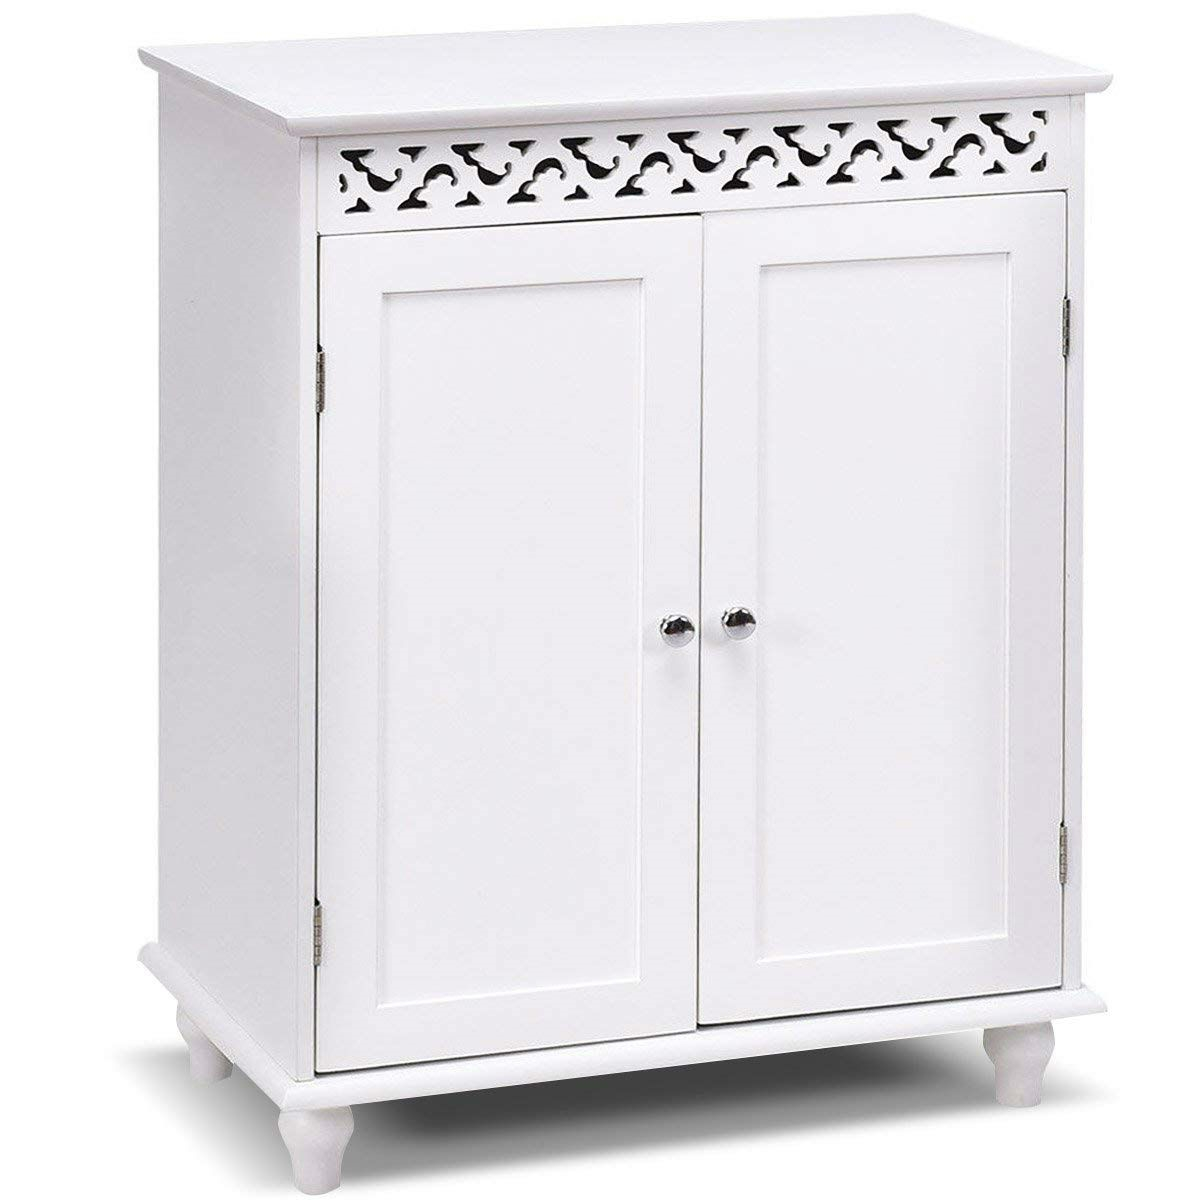 Fantastic White Modern 2 Door Bathroom Storage Floor Cabinet Interior Design Ideas Gentotryabchikinfo